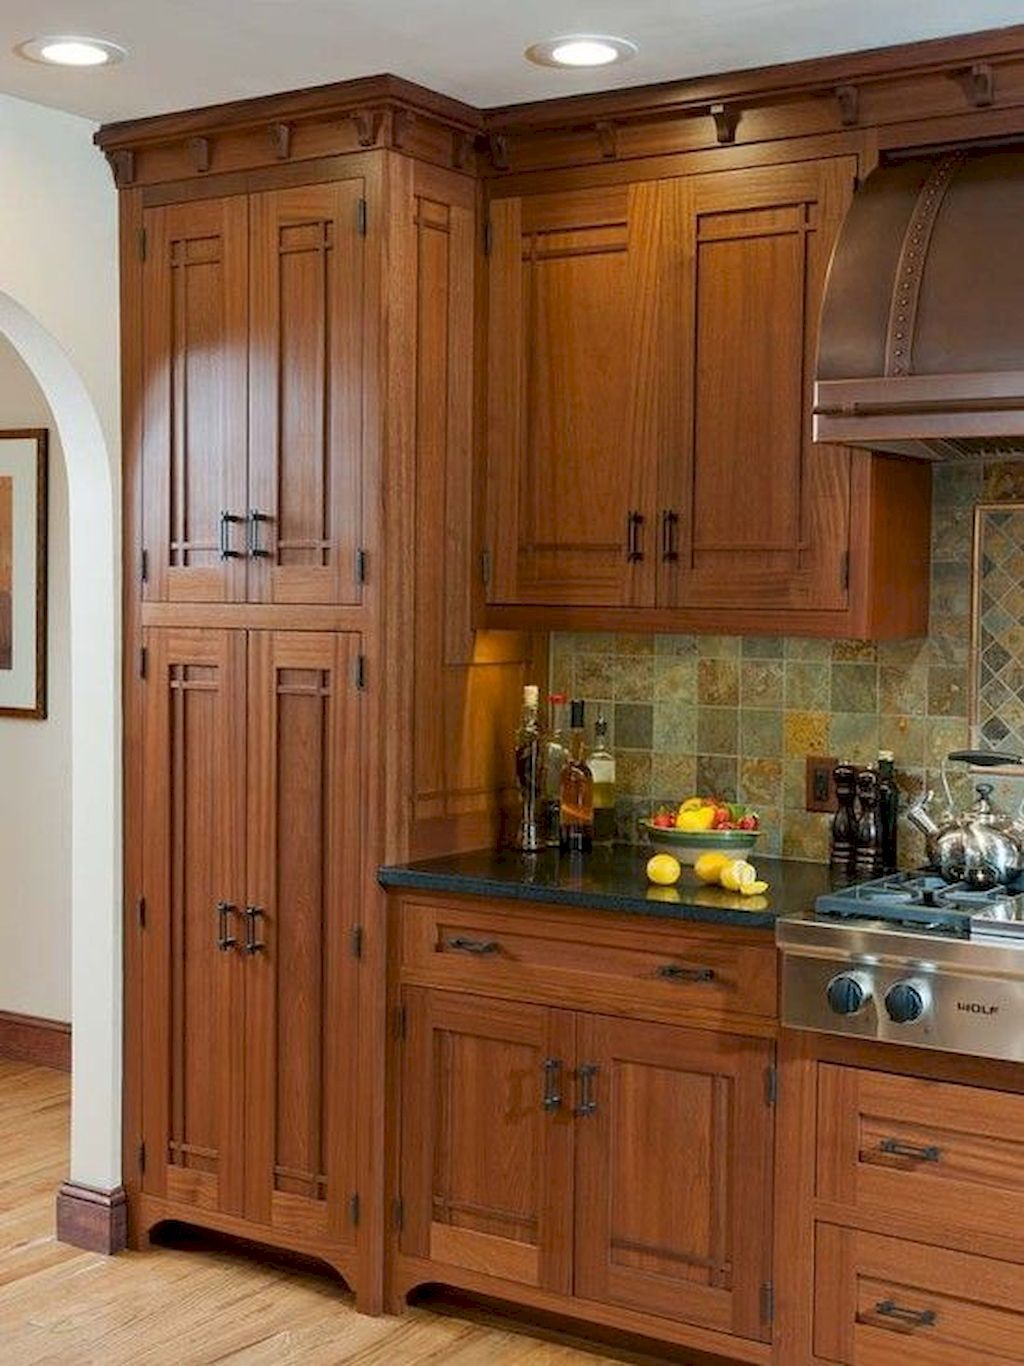 Wood Kitchen Cabinets An Investment To Awesome Kitchen Home To Z Kitchen Cabinet Styles Craftsman Style Kitchens Kitchen Design